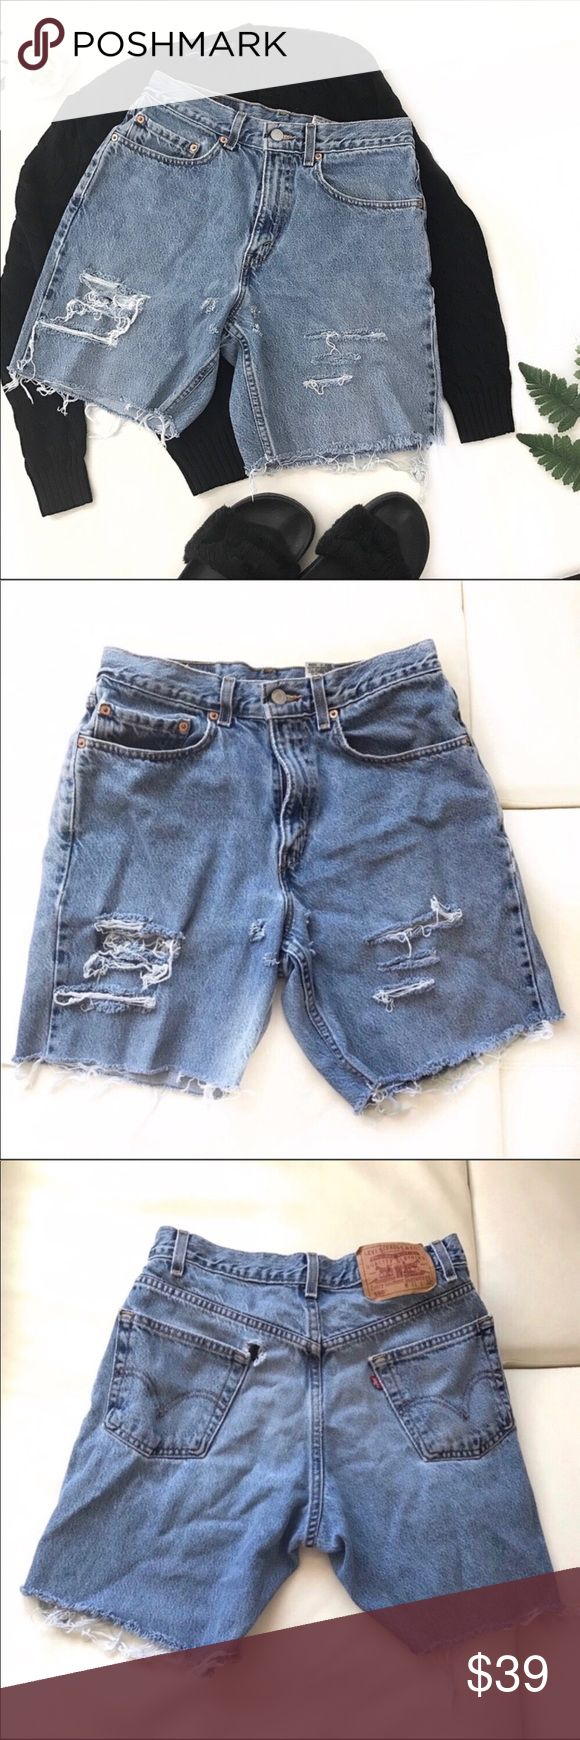 """LEVI'S 550 jeans distressed cut off shorts size 31 100% vintage feel cotton. Good condition, only flaw is hole in back pocket. (See pictures). Levi's 550 cutoff jean shorts are a denim staple! Summer Halloween costume   Waist 31"""" Rise 11"""" Inseam 7.5"""" Levi's Shorts Jean Shorts"""